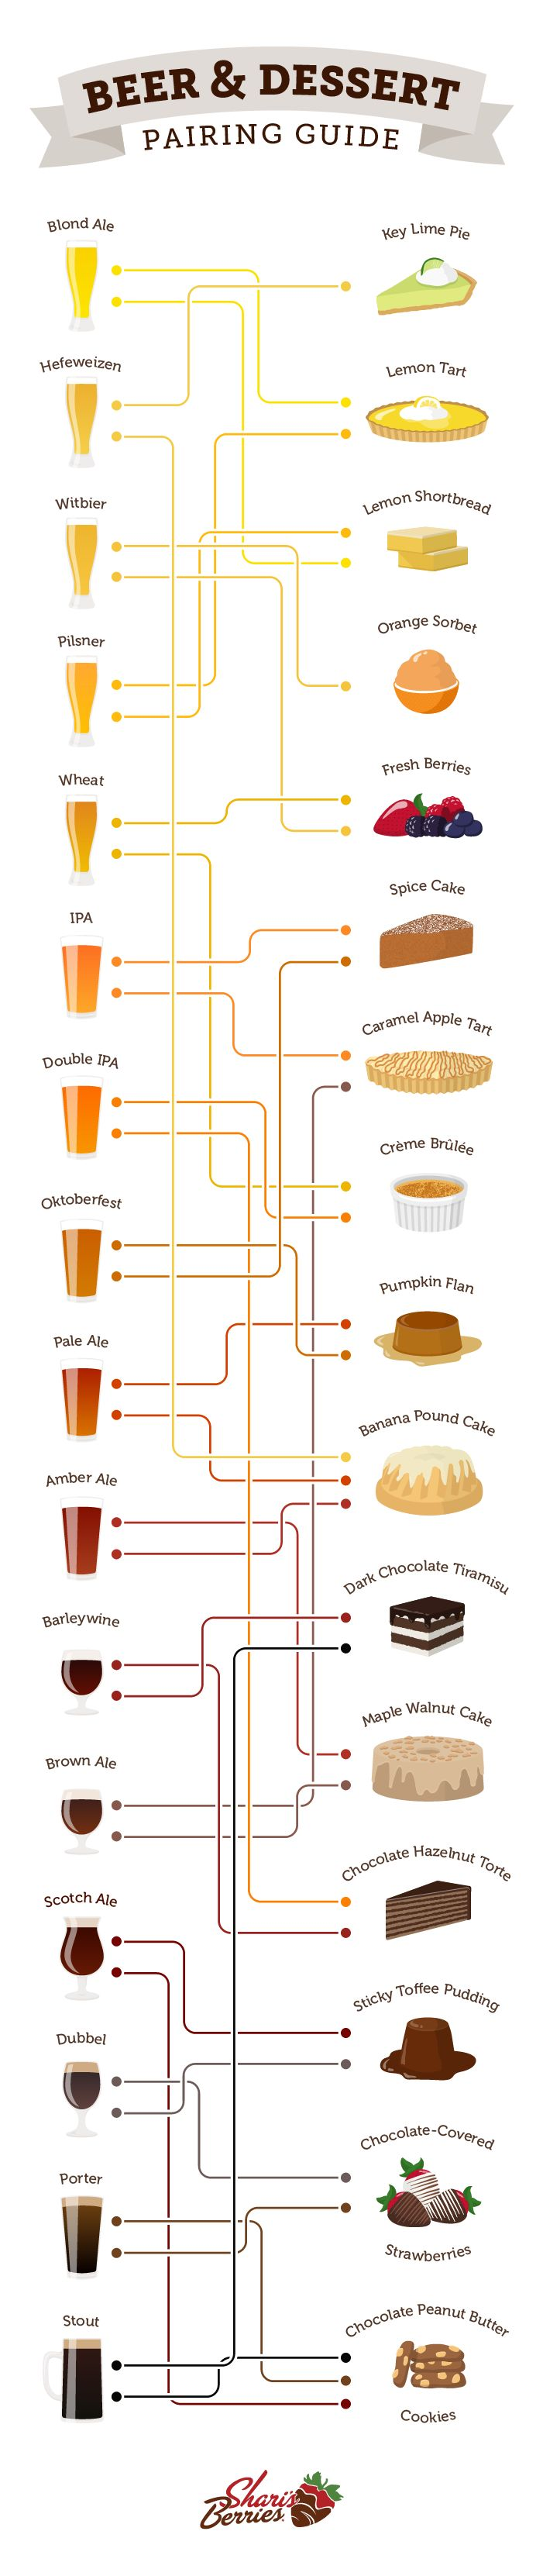 What brew pairs best with your favorite sweets? Satisfy your sweet tooth and unwind with this delicious beer and dessert pairing guide from @sharisberries.